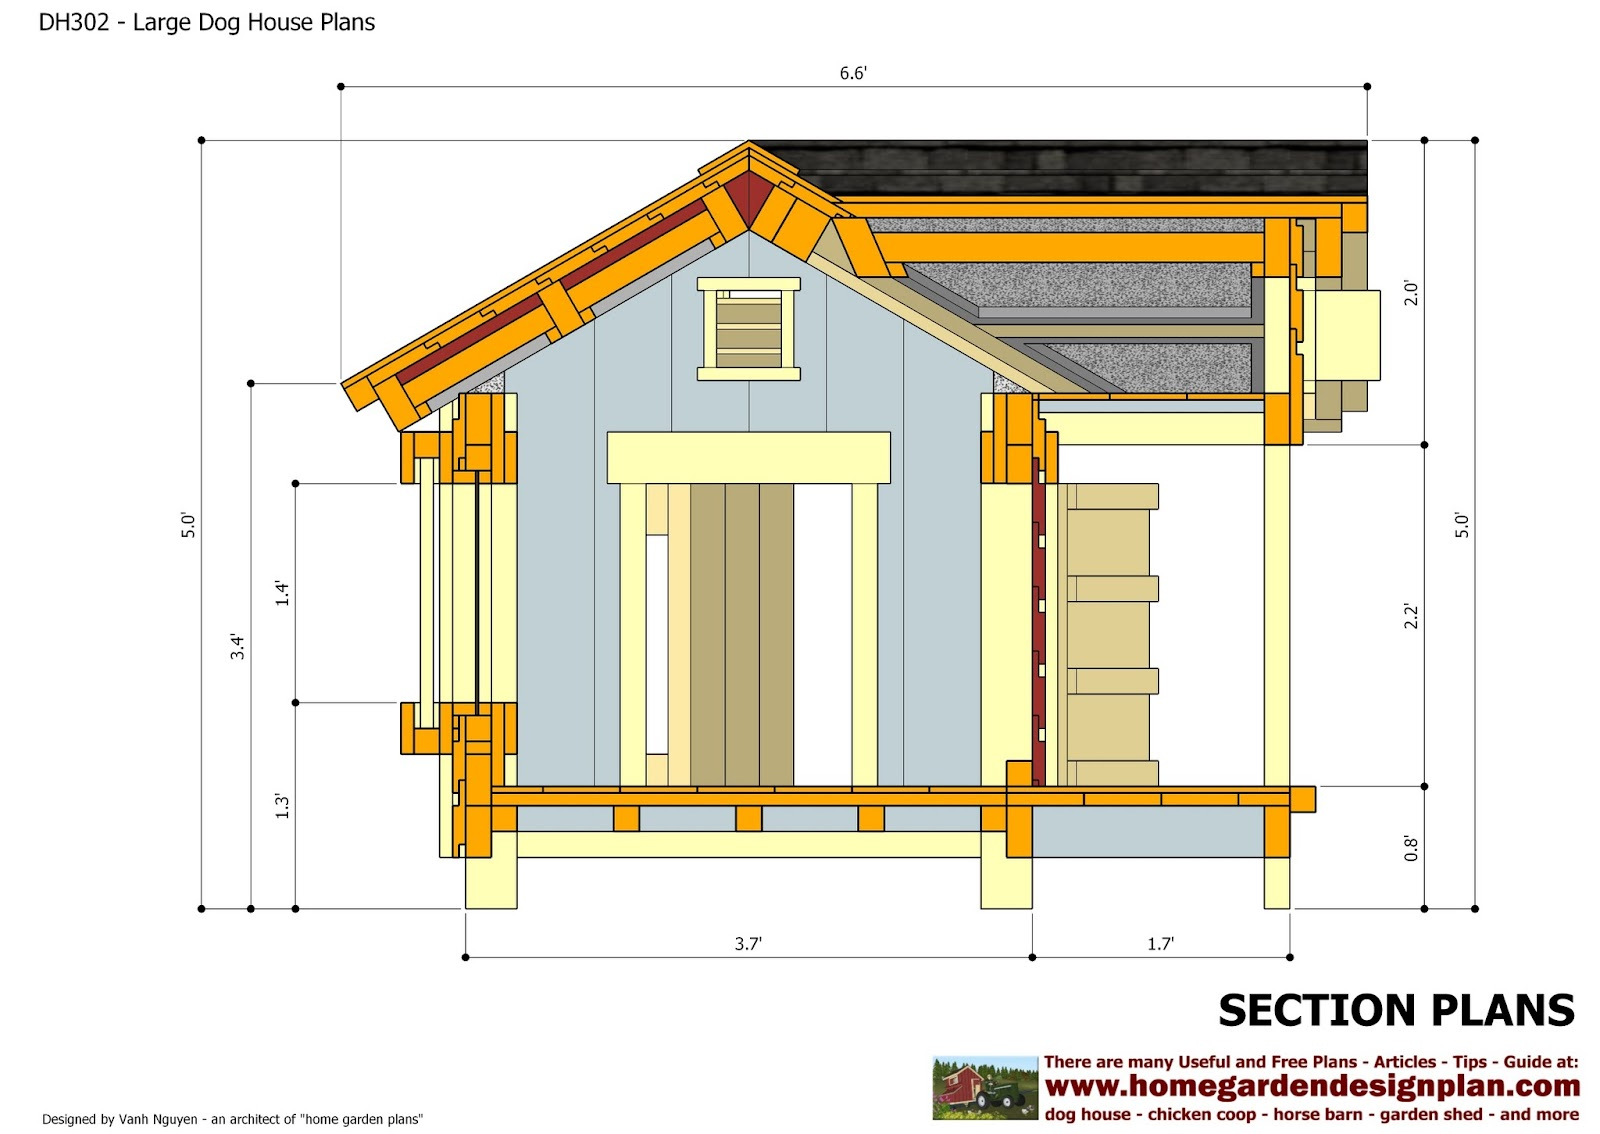 Large Dog Houses For Sale Cheap